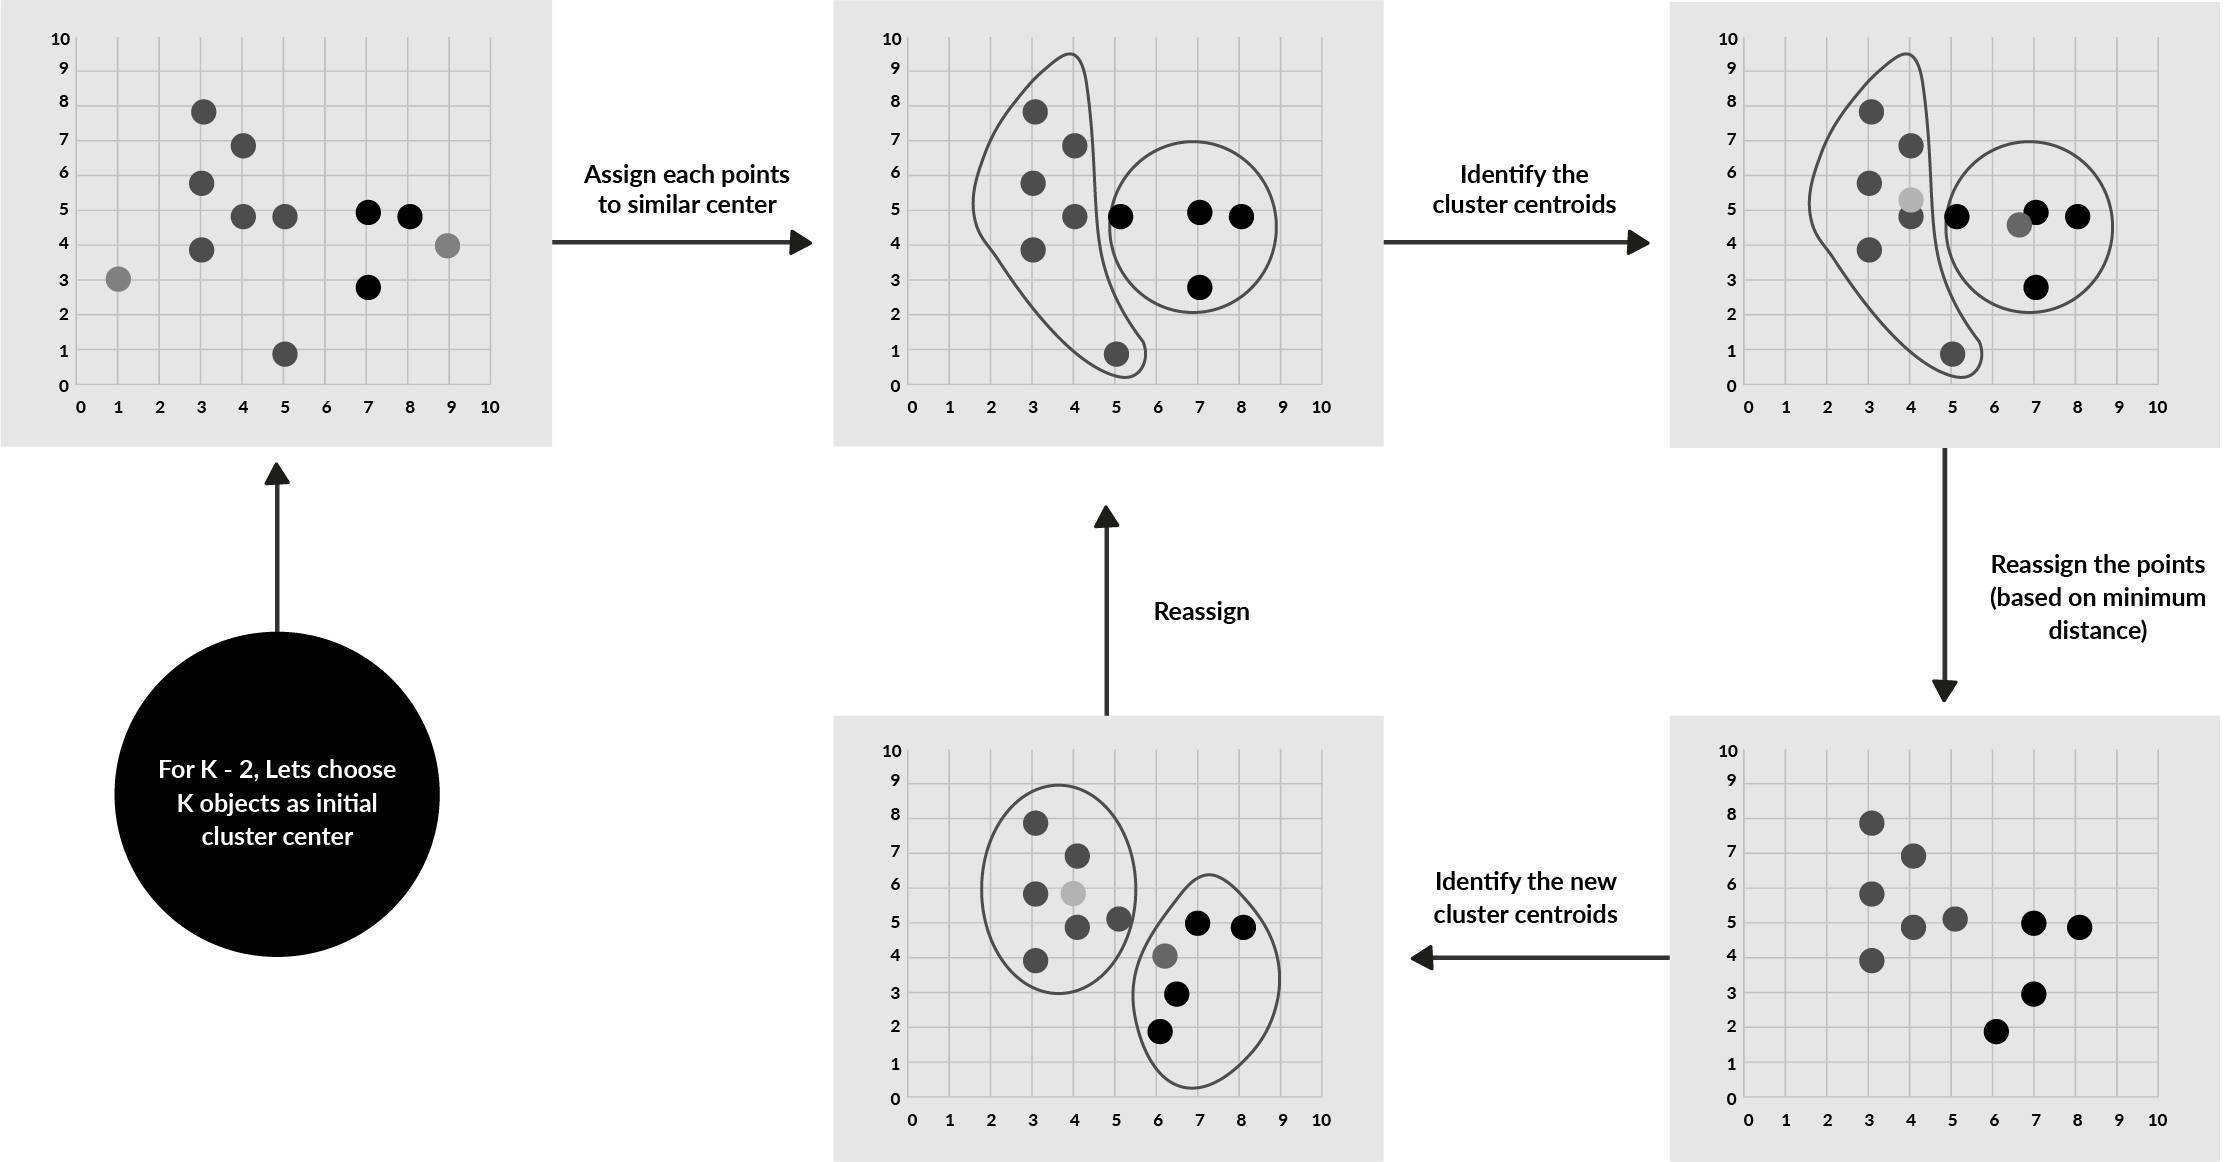 How To Use A K-Means Clustering Algorithm